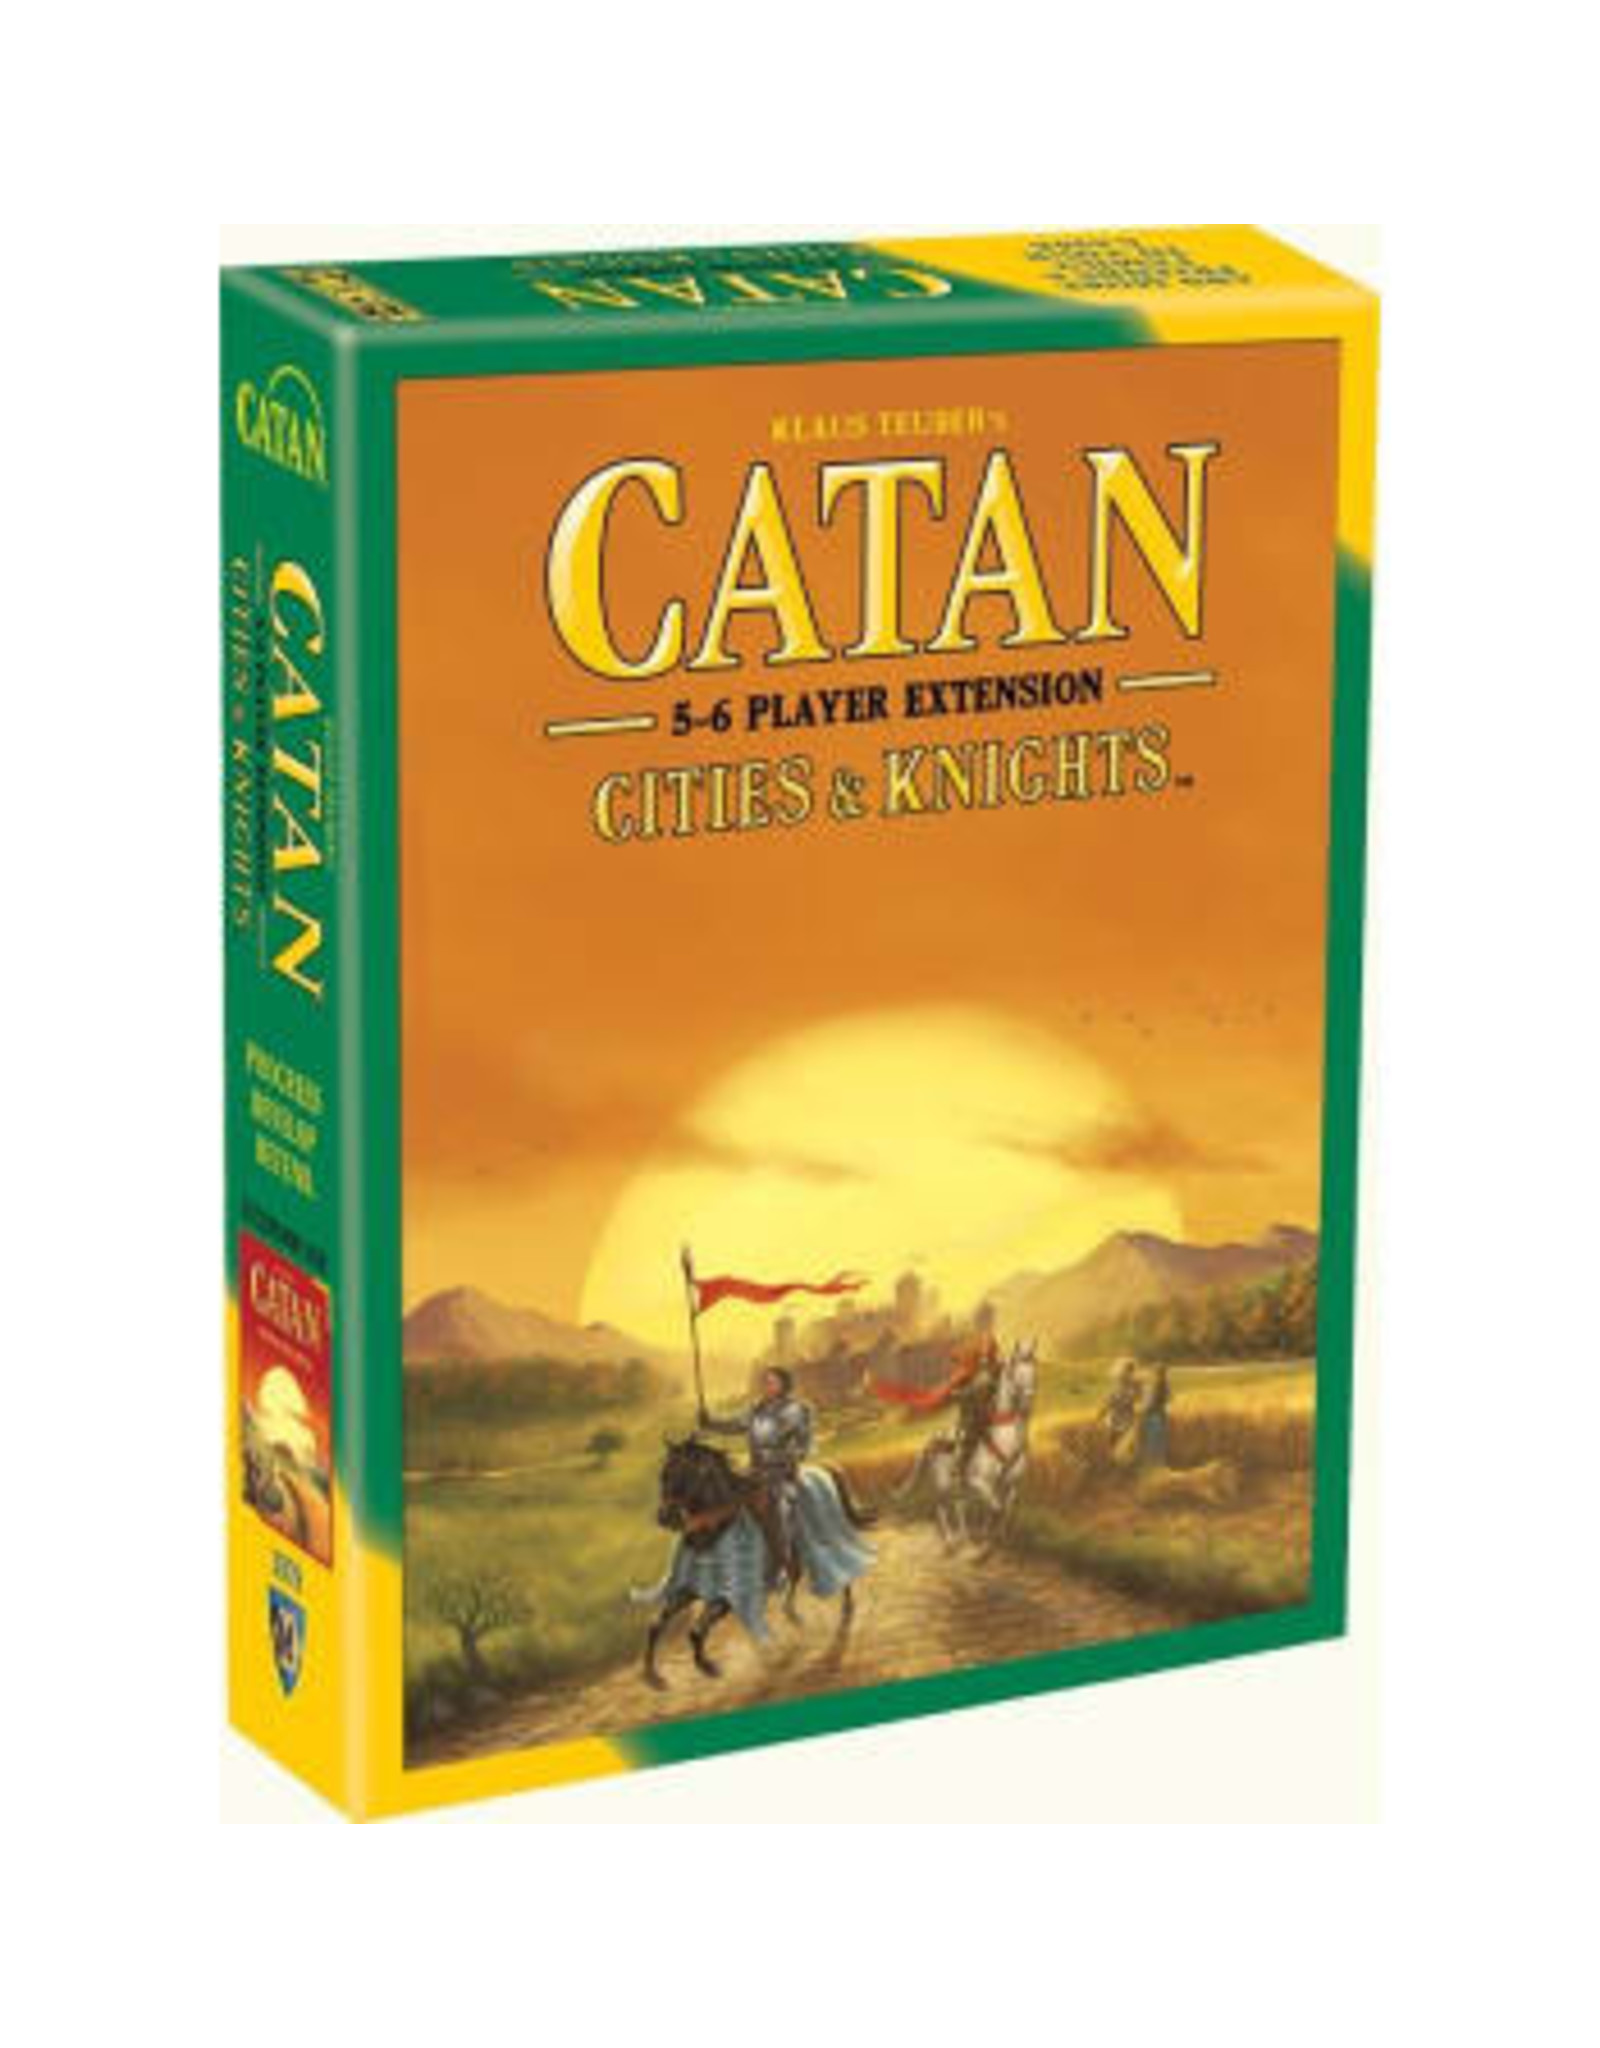 Settlers of Catan Catan: Cities and Knights 5-6 Player Extension